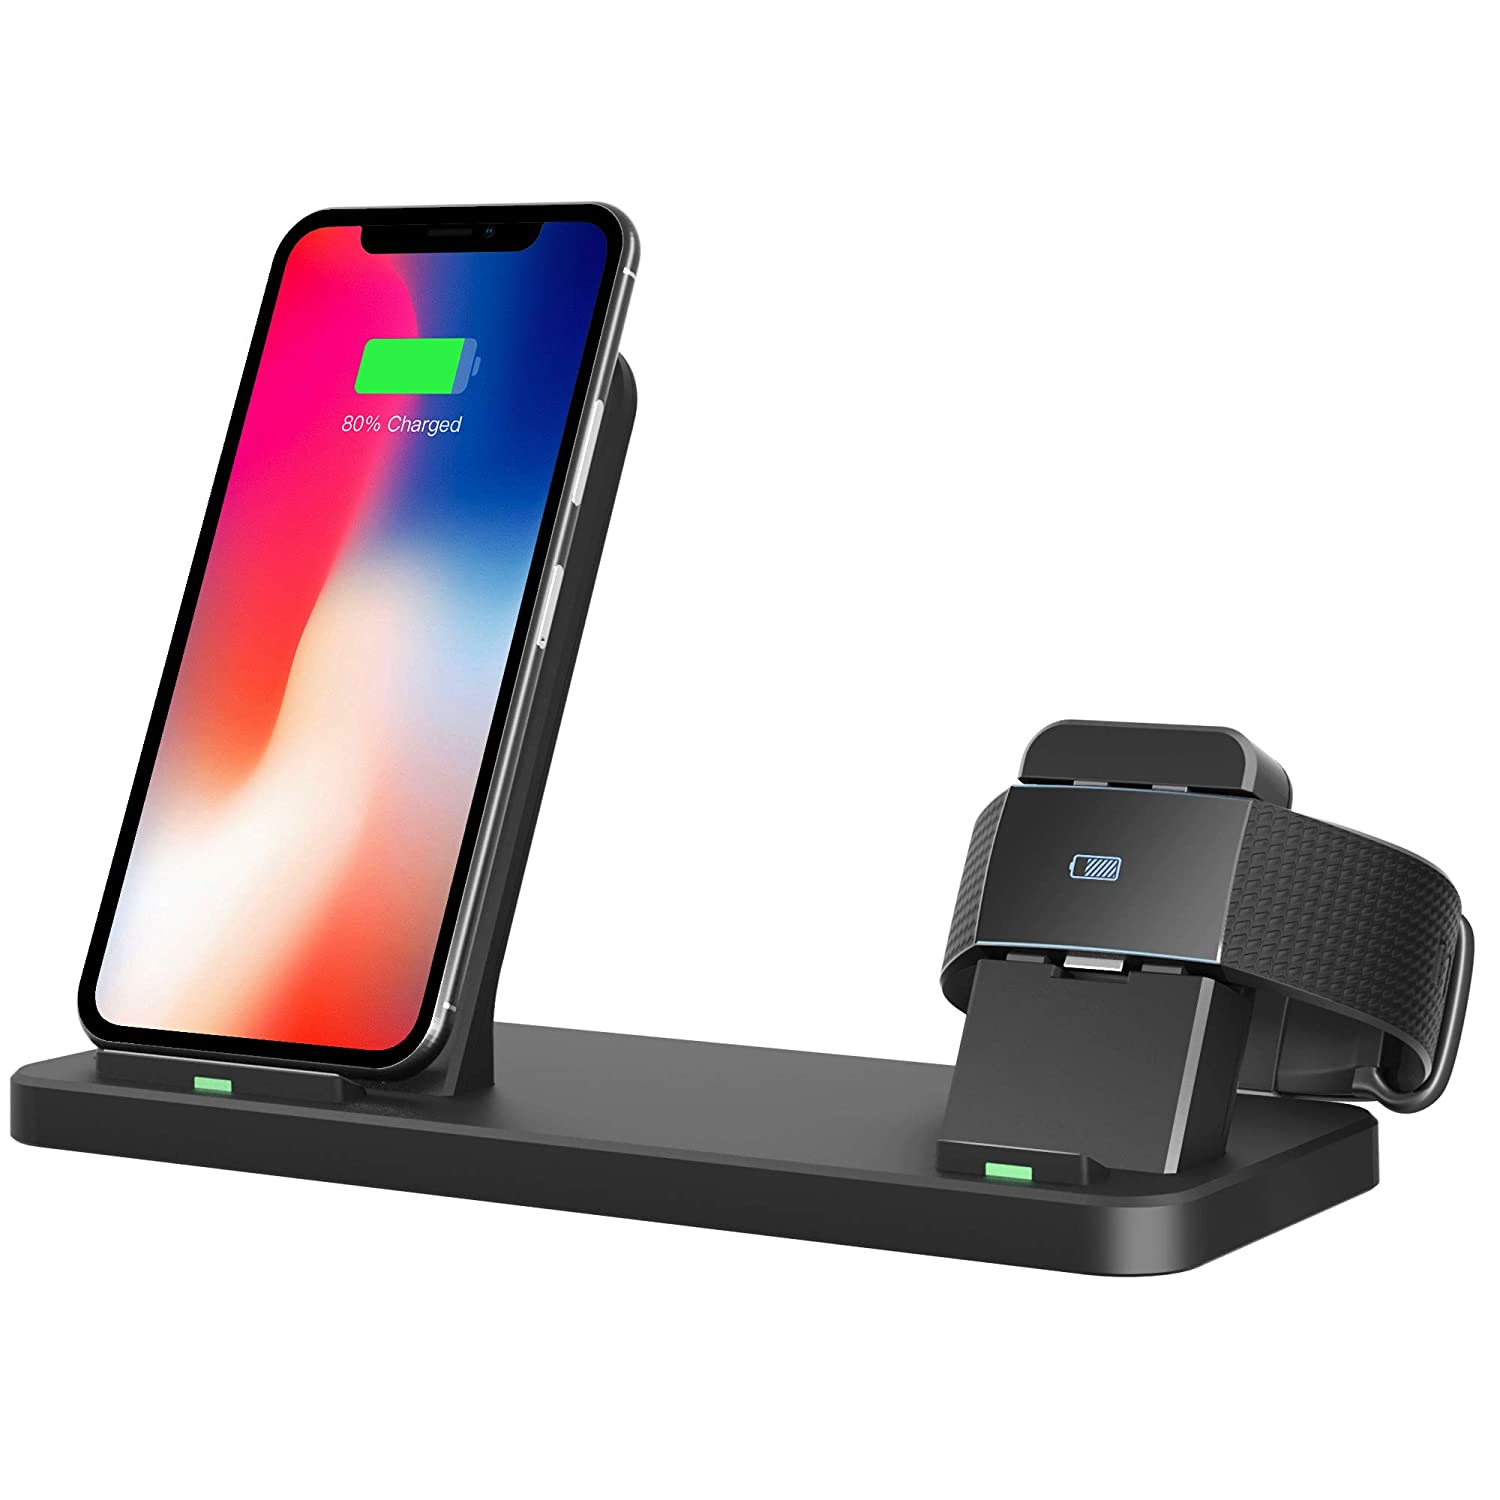 Tensea Compatible with Fitbit Charge 2 Charger, 2 in 1 Fast Qi Phone Wireless Charging Stand and Charging Dock Compatible for Fitbit Charge 2